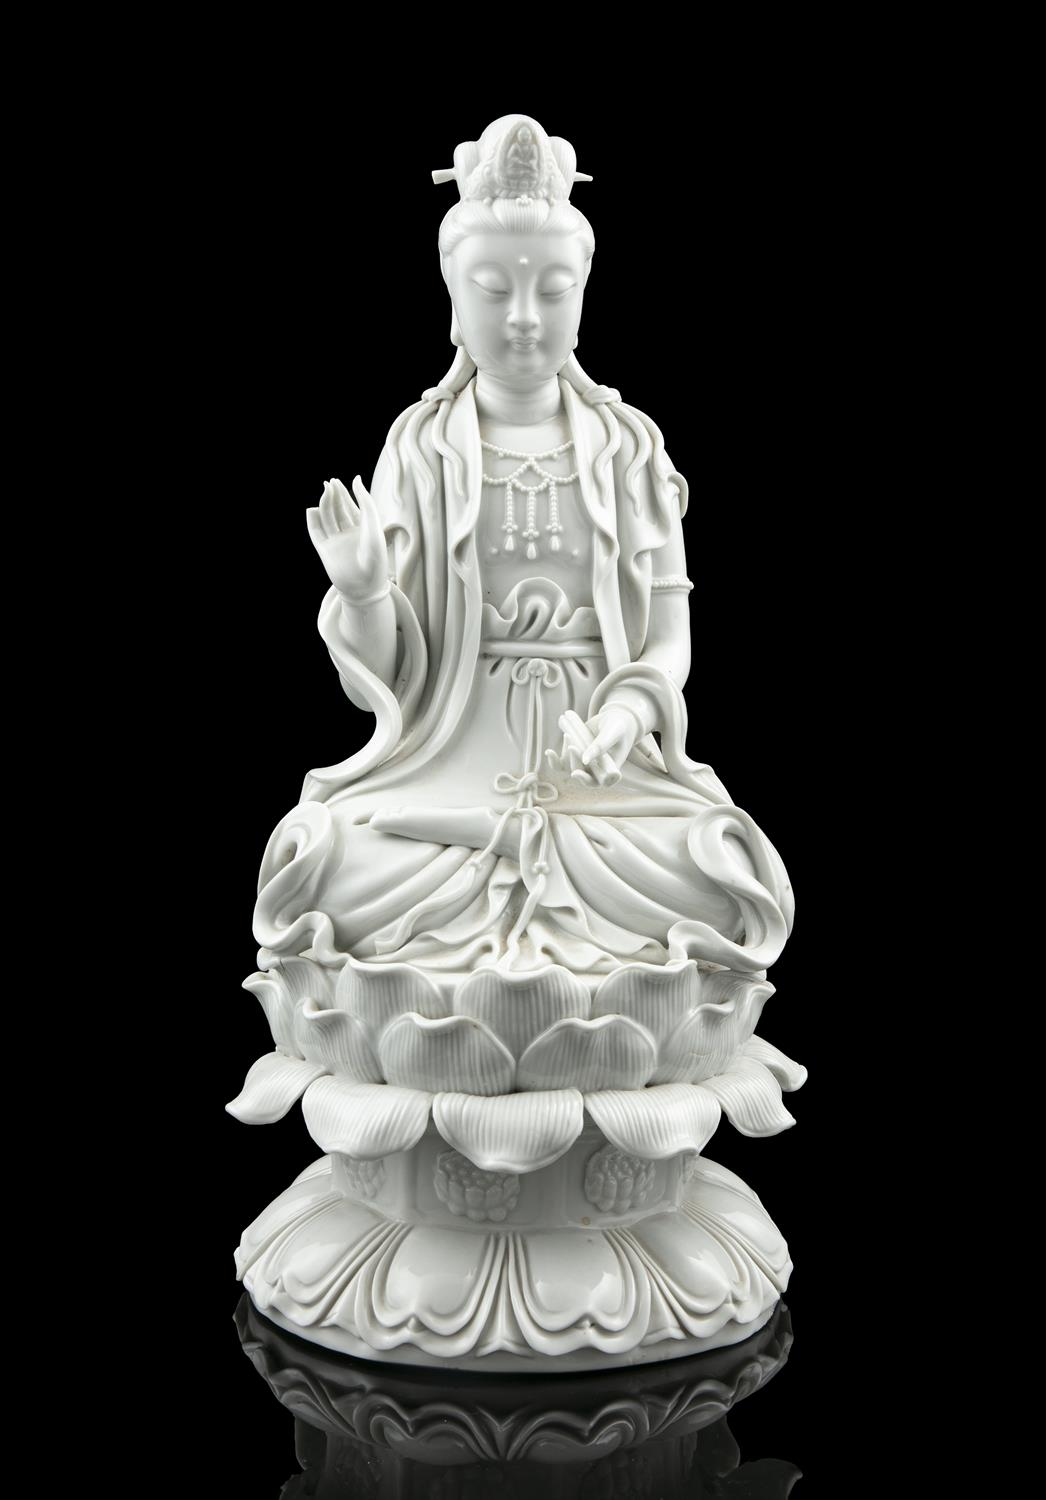 A LARGE DEHUA FIGURE OF A SEATED GUANYIN China, 19th to 20th century The goddess of mercy is - Image 14 of 18